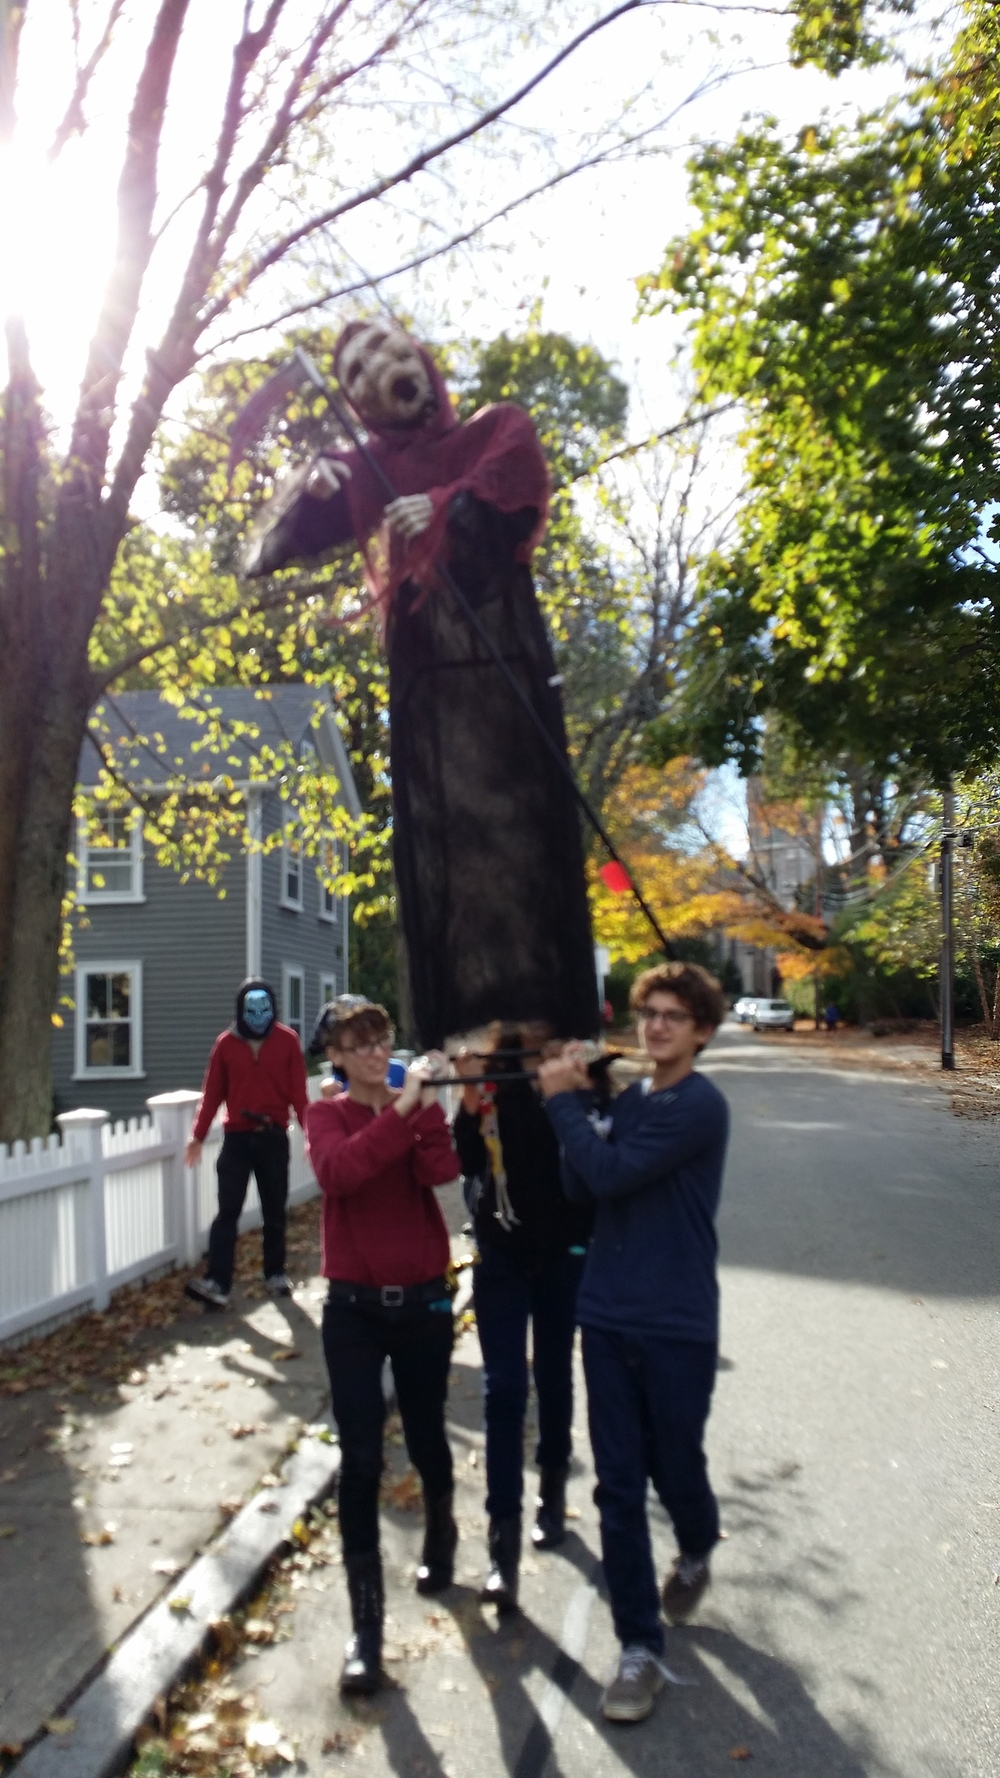 We started by processing our Halloween mascot Ily, through the streets of Dedham to Town Hall.